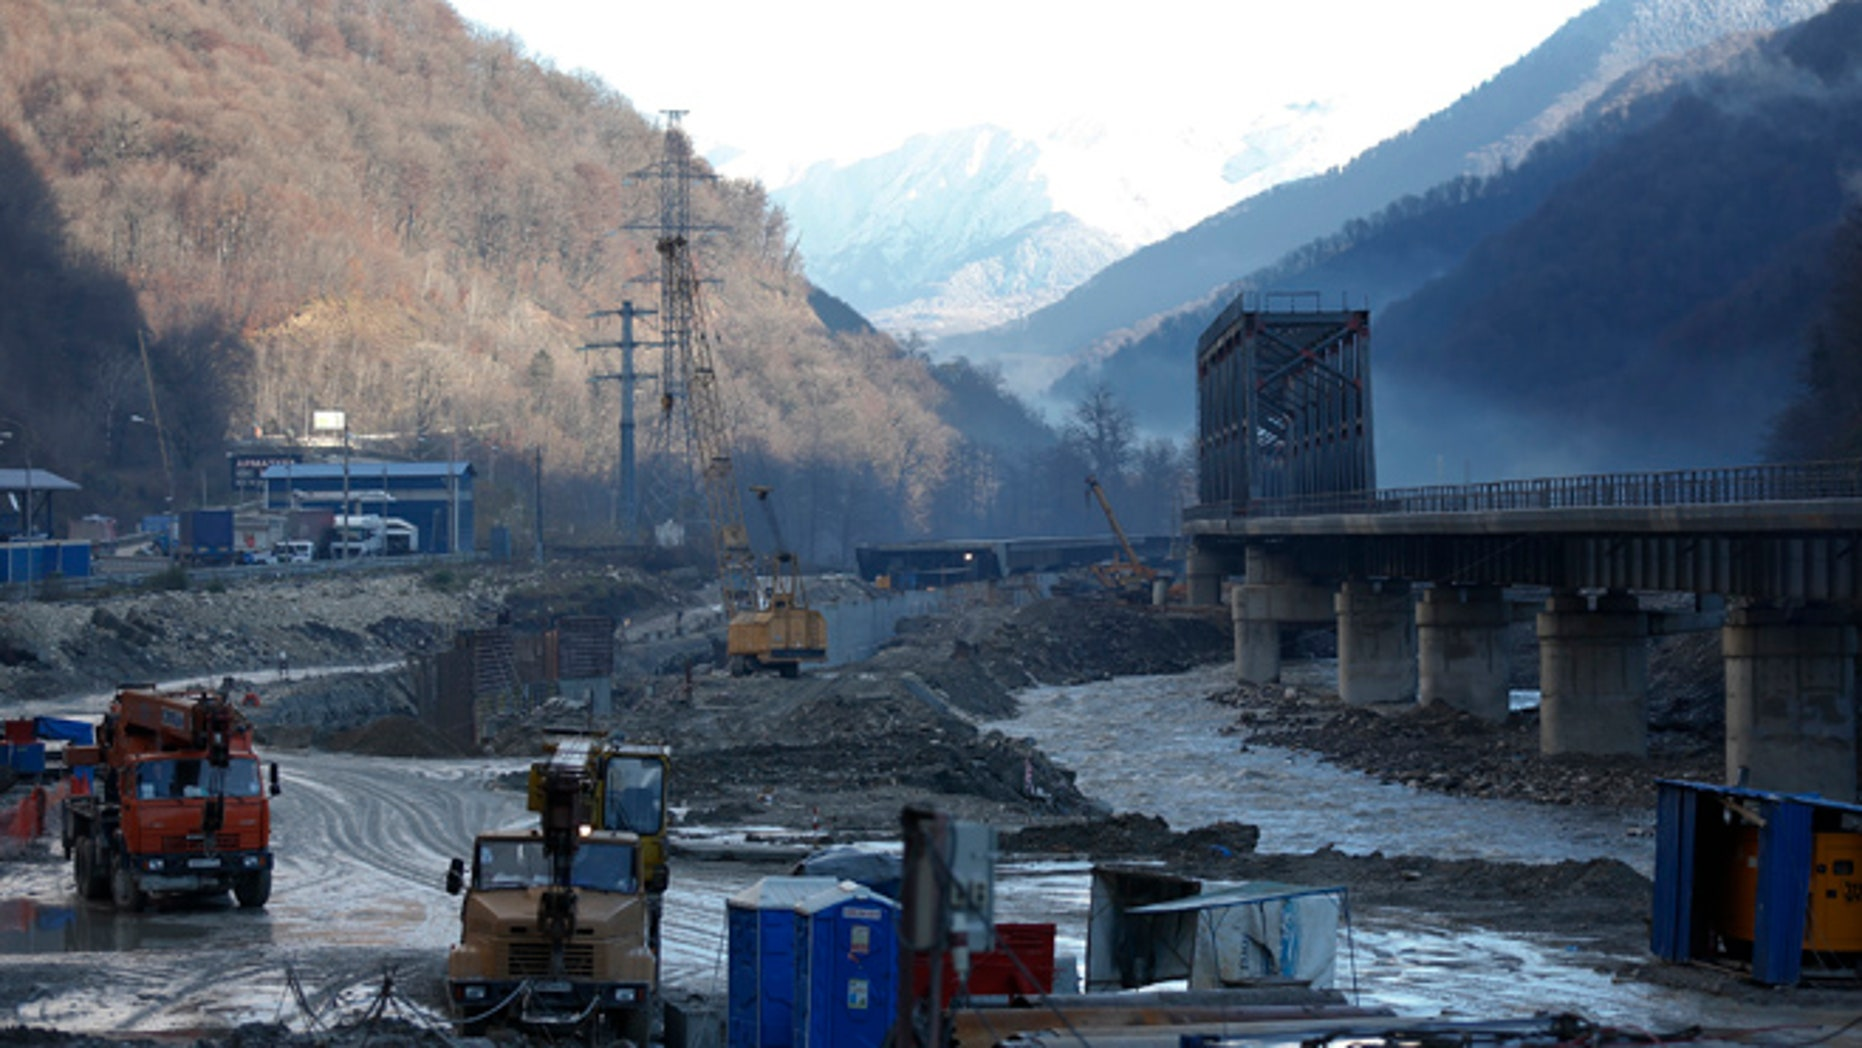 FILE 2012: A view shows a road and railway link to Krasnaya Polyana, a venue for the Sochi 2014 winter Olympics.